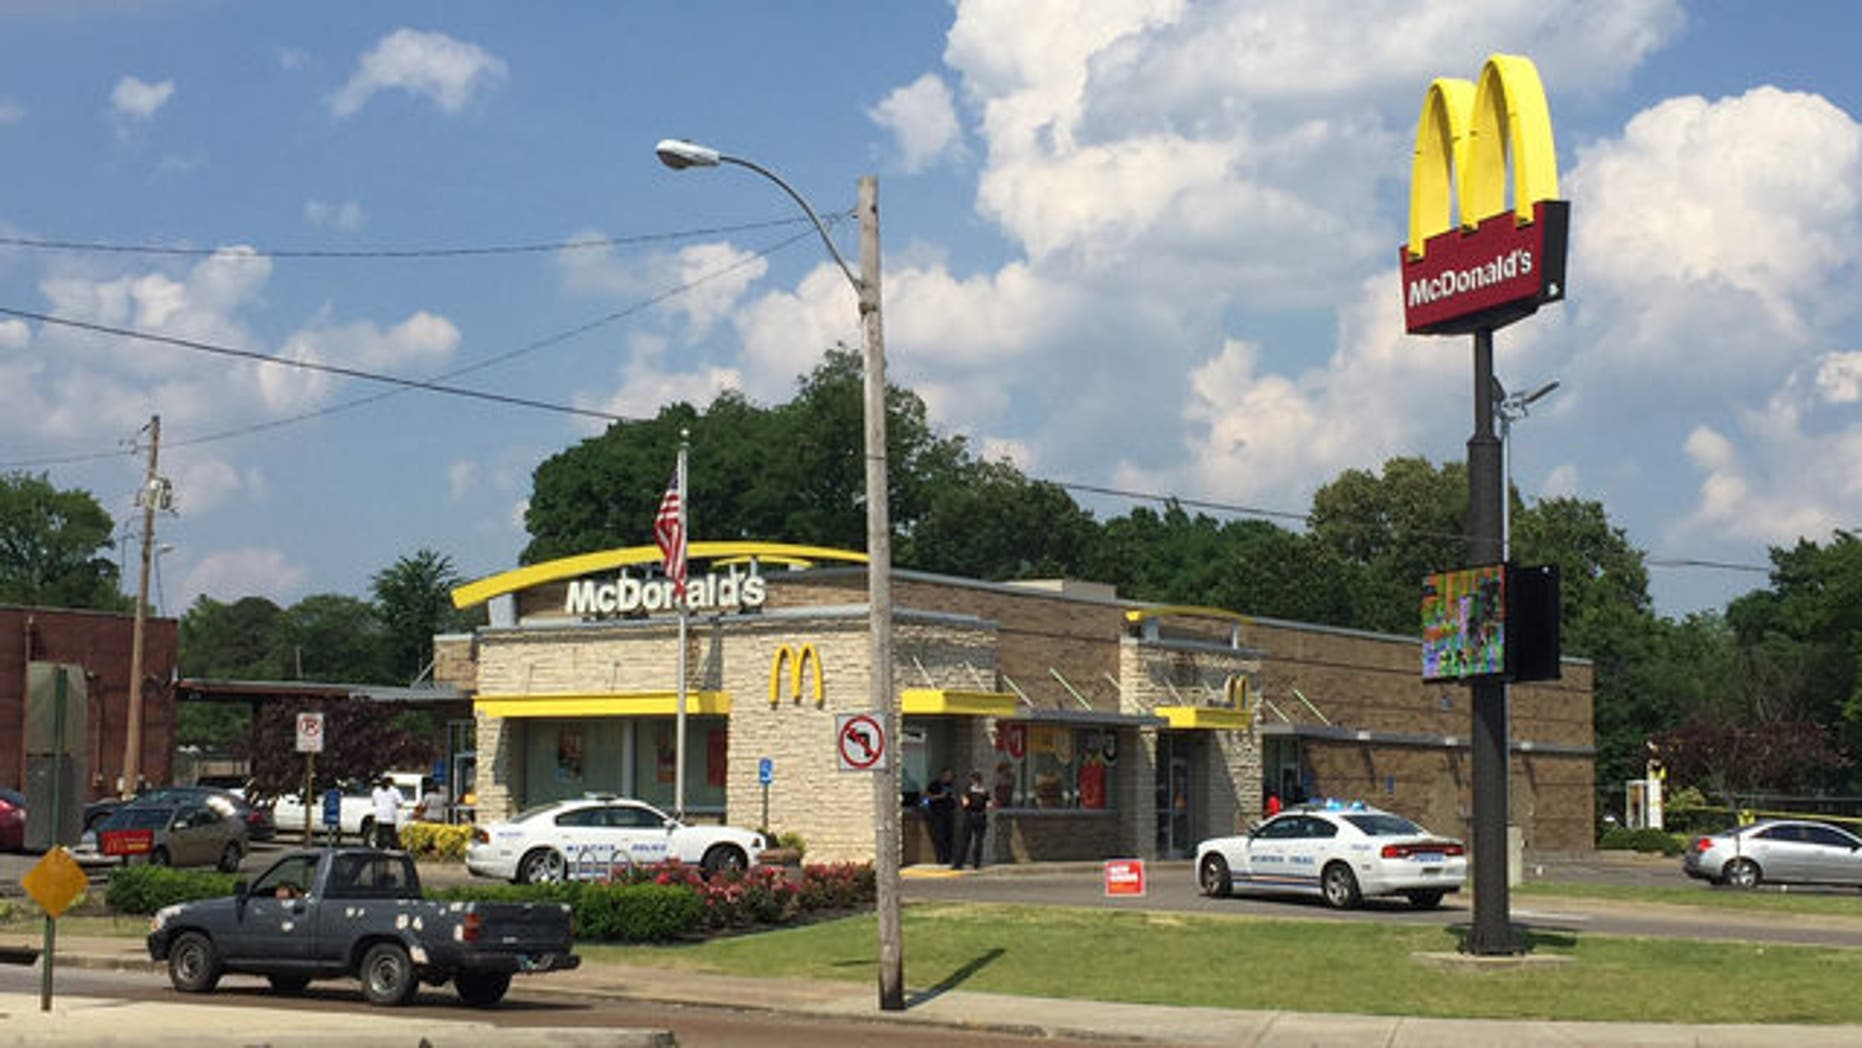 A man shot one of the four suspects who were attempting to rob him at a Memphis McDonald's.